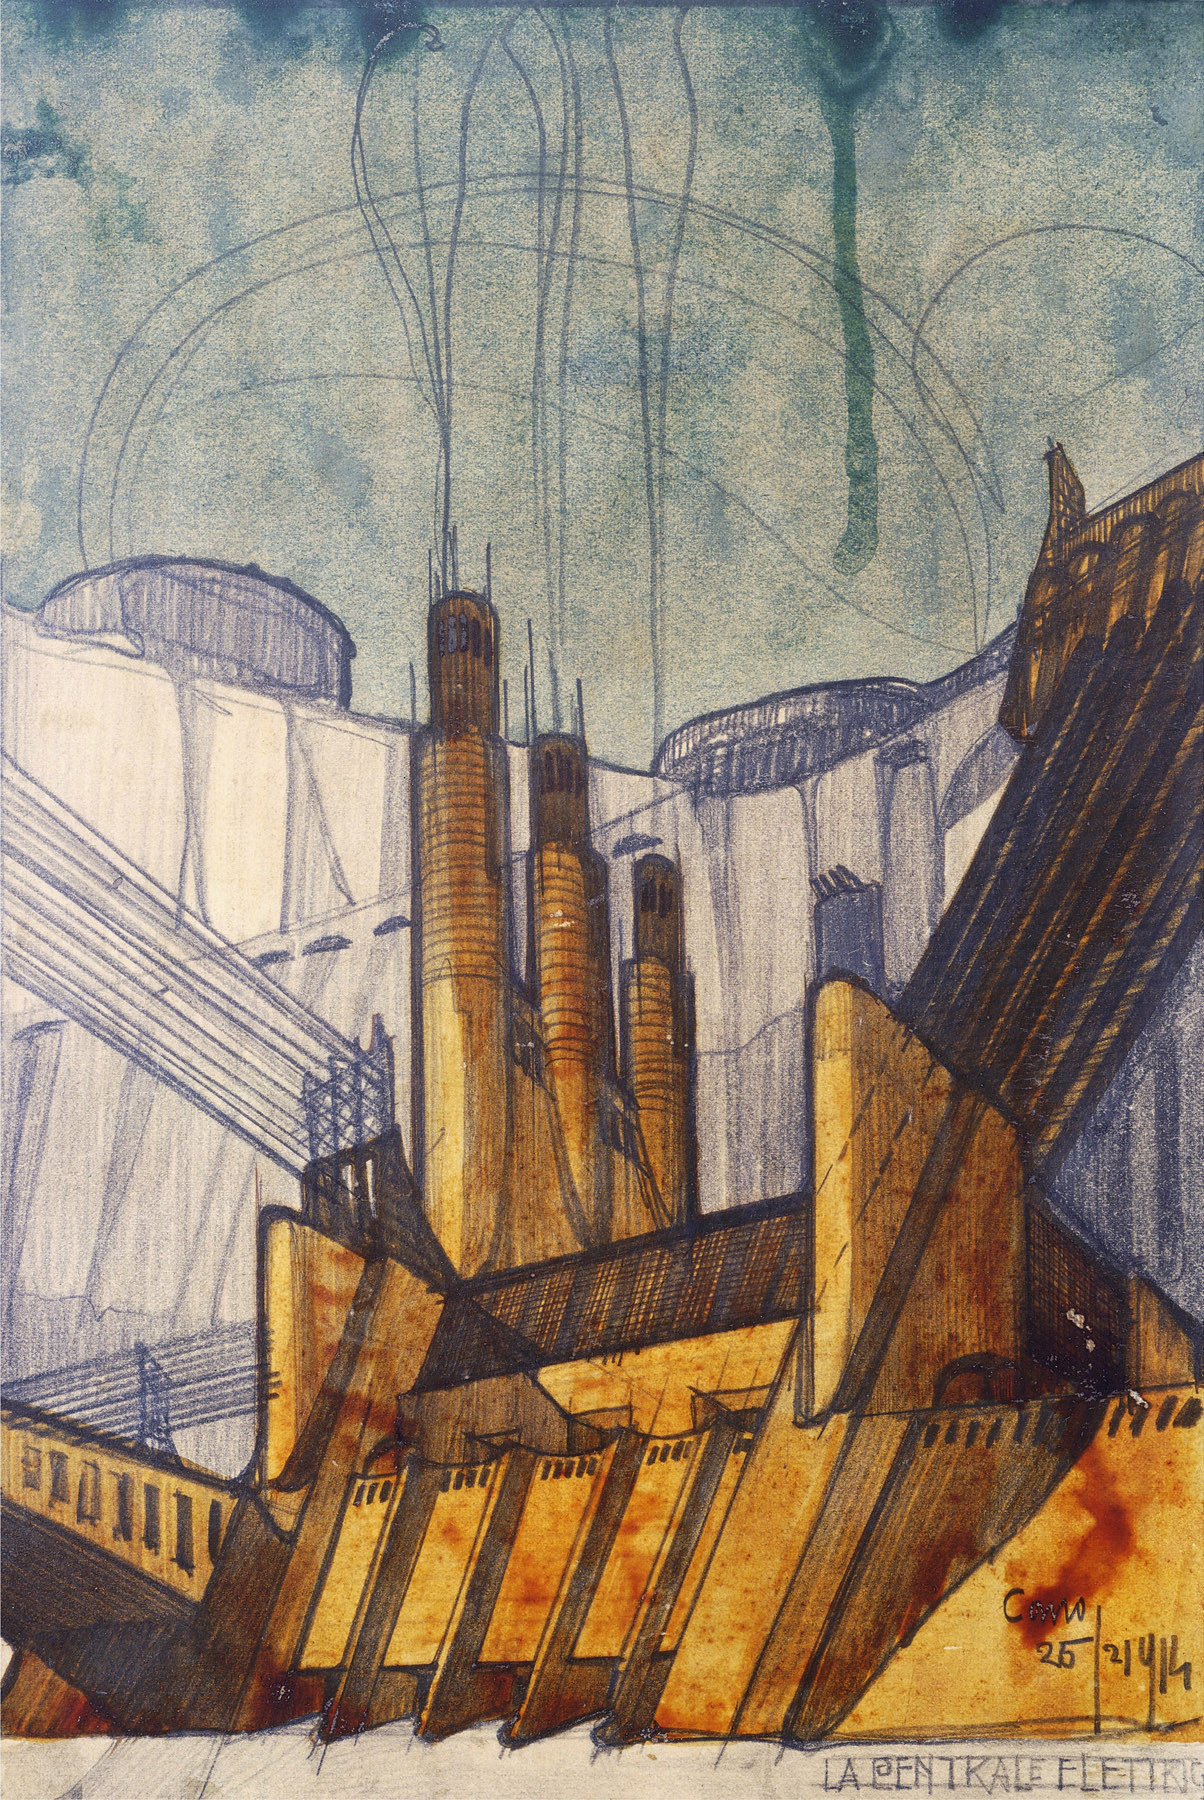 Power Plant, 1914, by Antonio Sant'Elia (1888-1916), study in black, green and red ink and black pencil